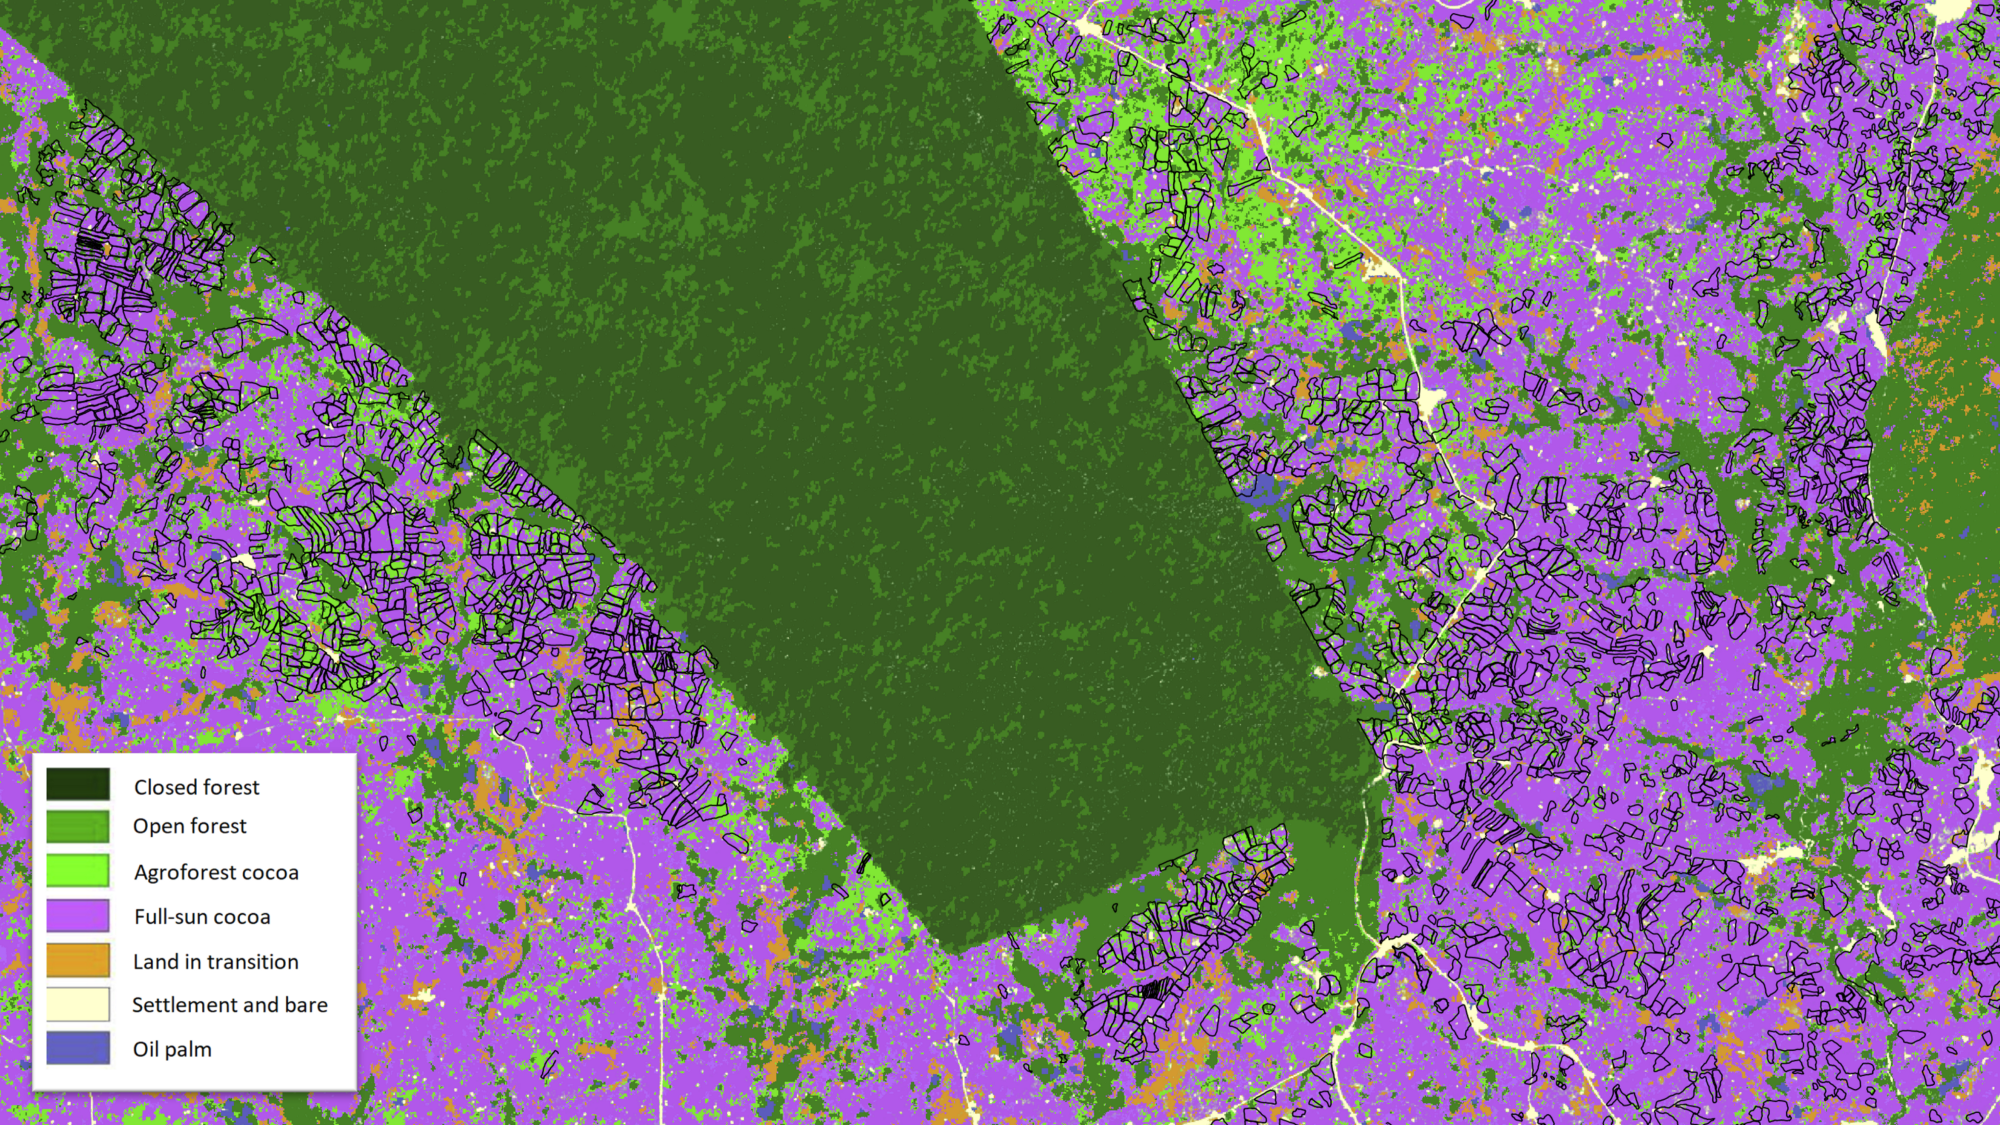 Farm data produced by Touton (black lines) overlaid on map product produced by Satelligence. Courtesy 3PRCL landscape project led by Touton. Partnership for Productivity Protection and Resilience in Cocoa Landscape. Colour scheme according to local expert preference.